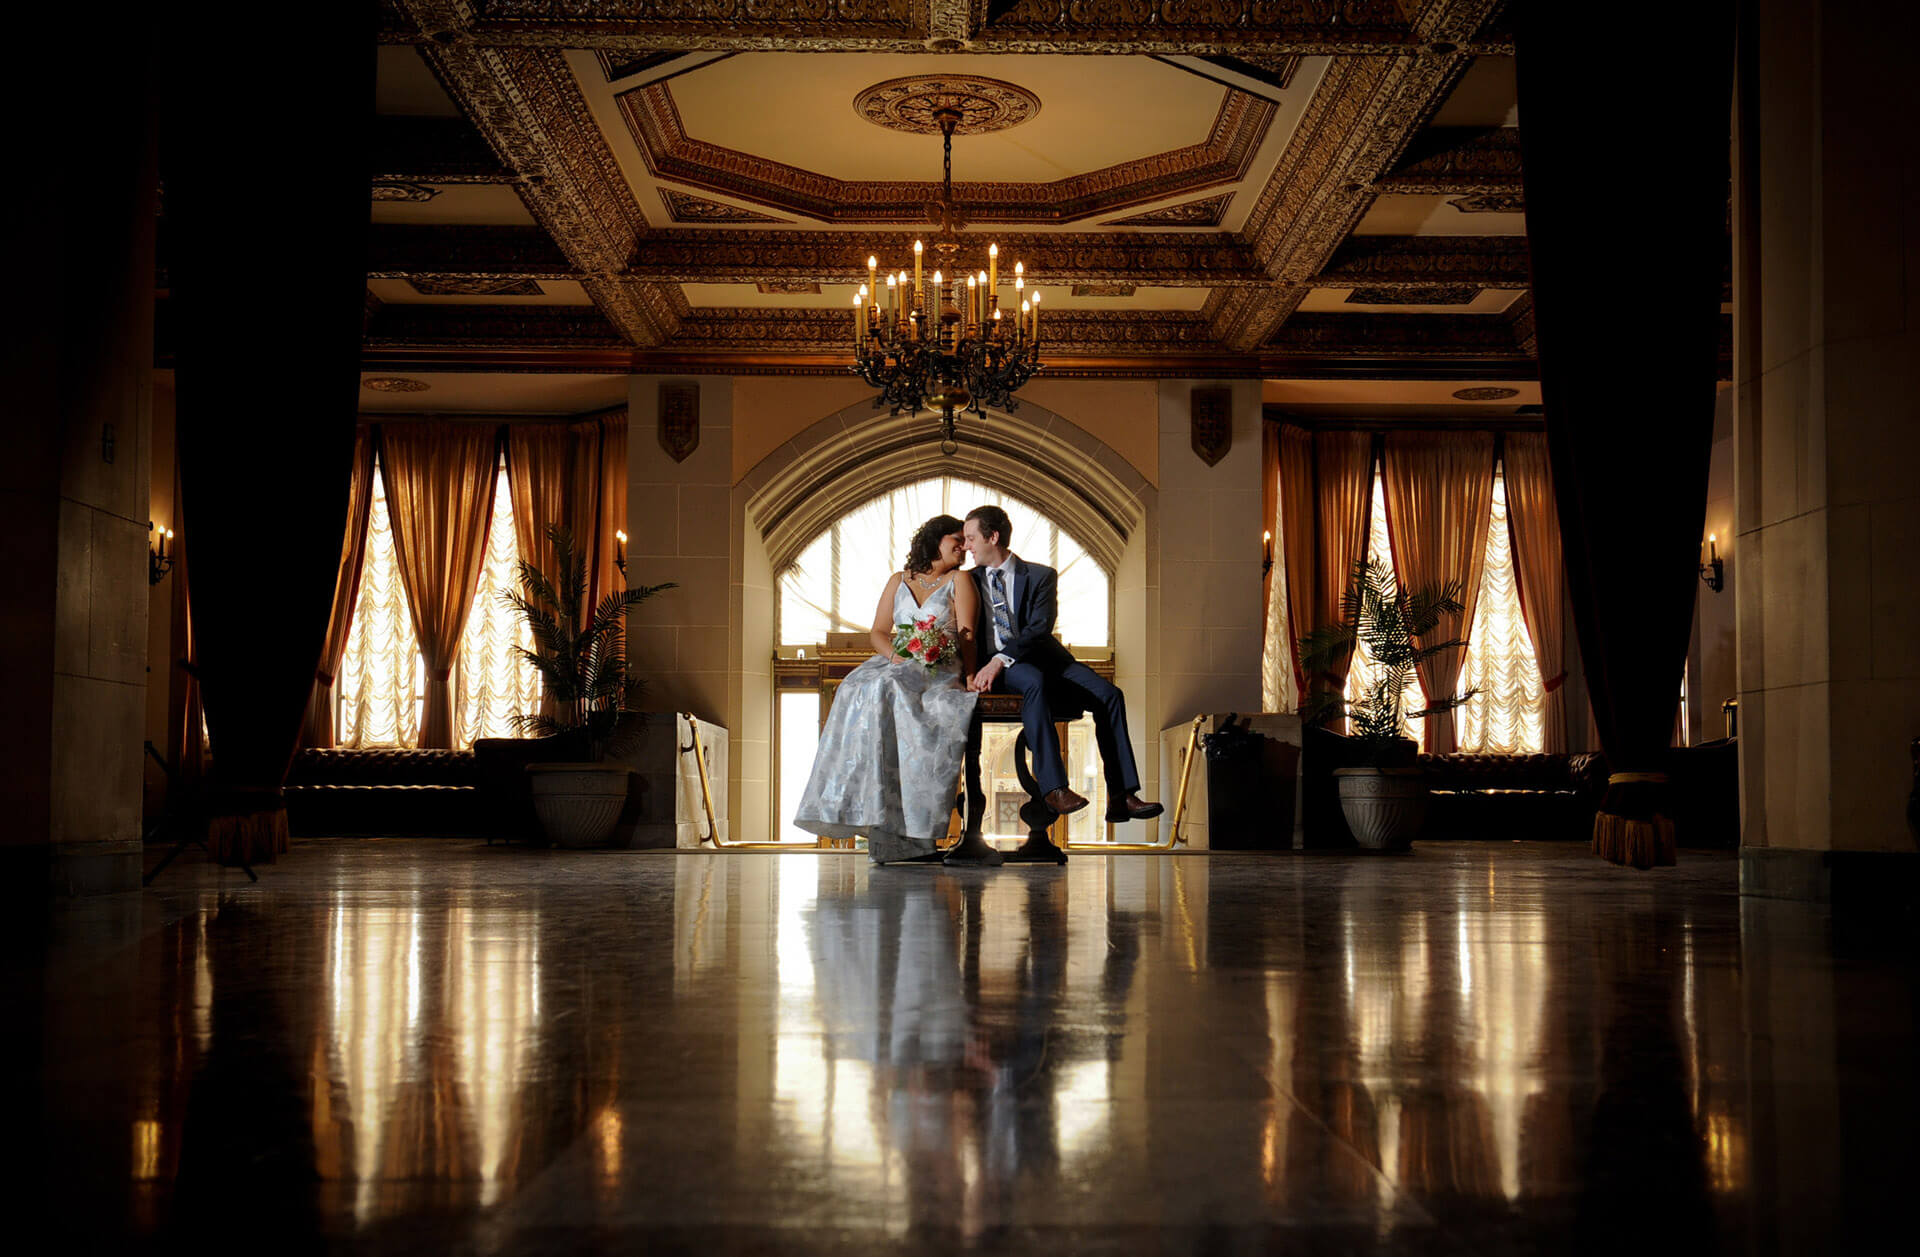 A metro Detroit, bride and groom celebrate their wedding in the lobby of the Masonic Temple downtown Detroit, Michigan.